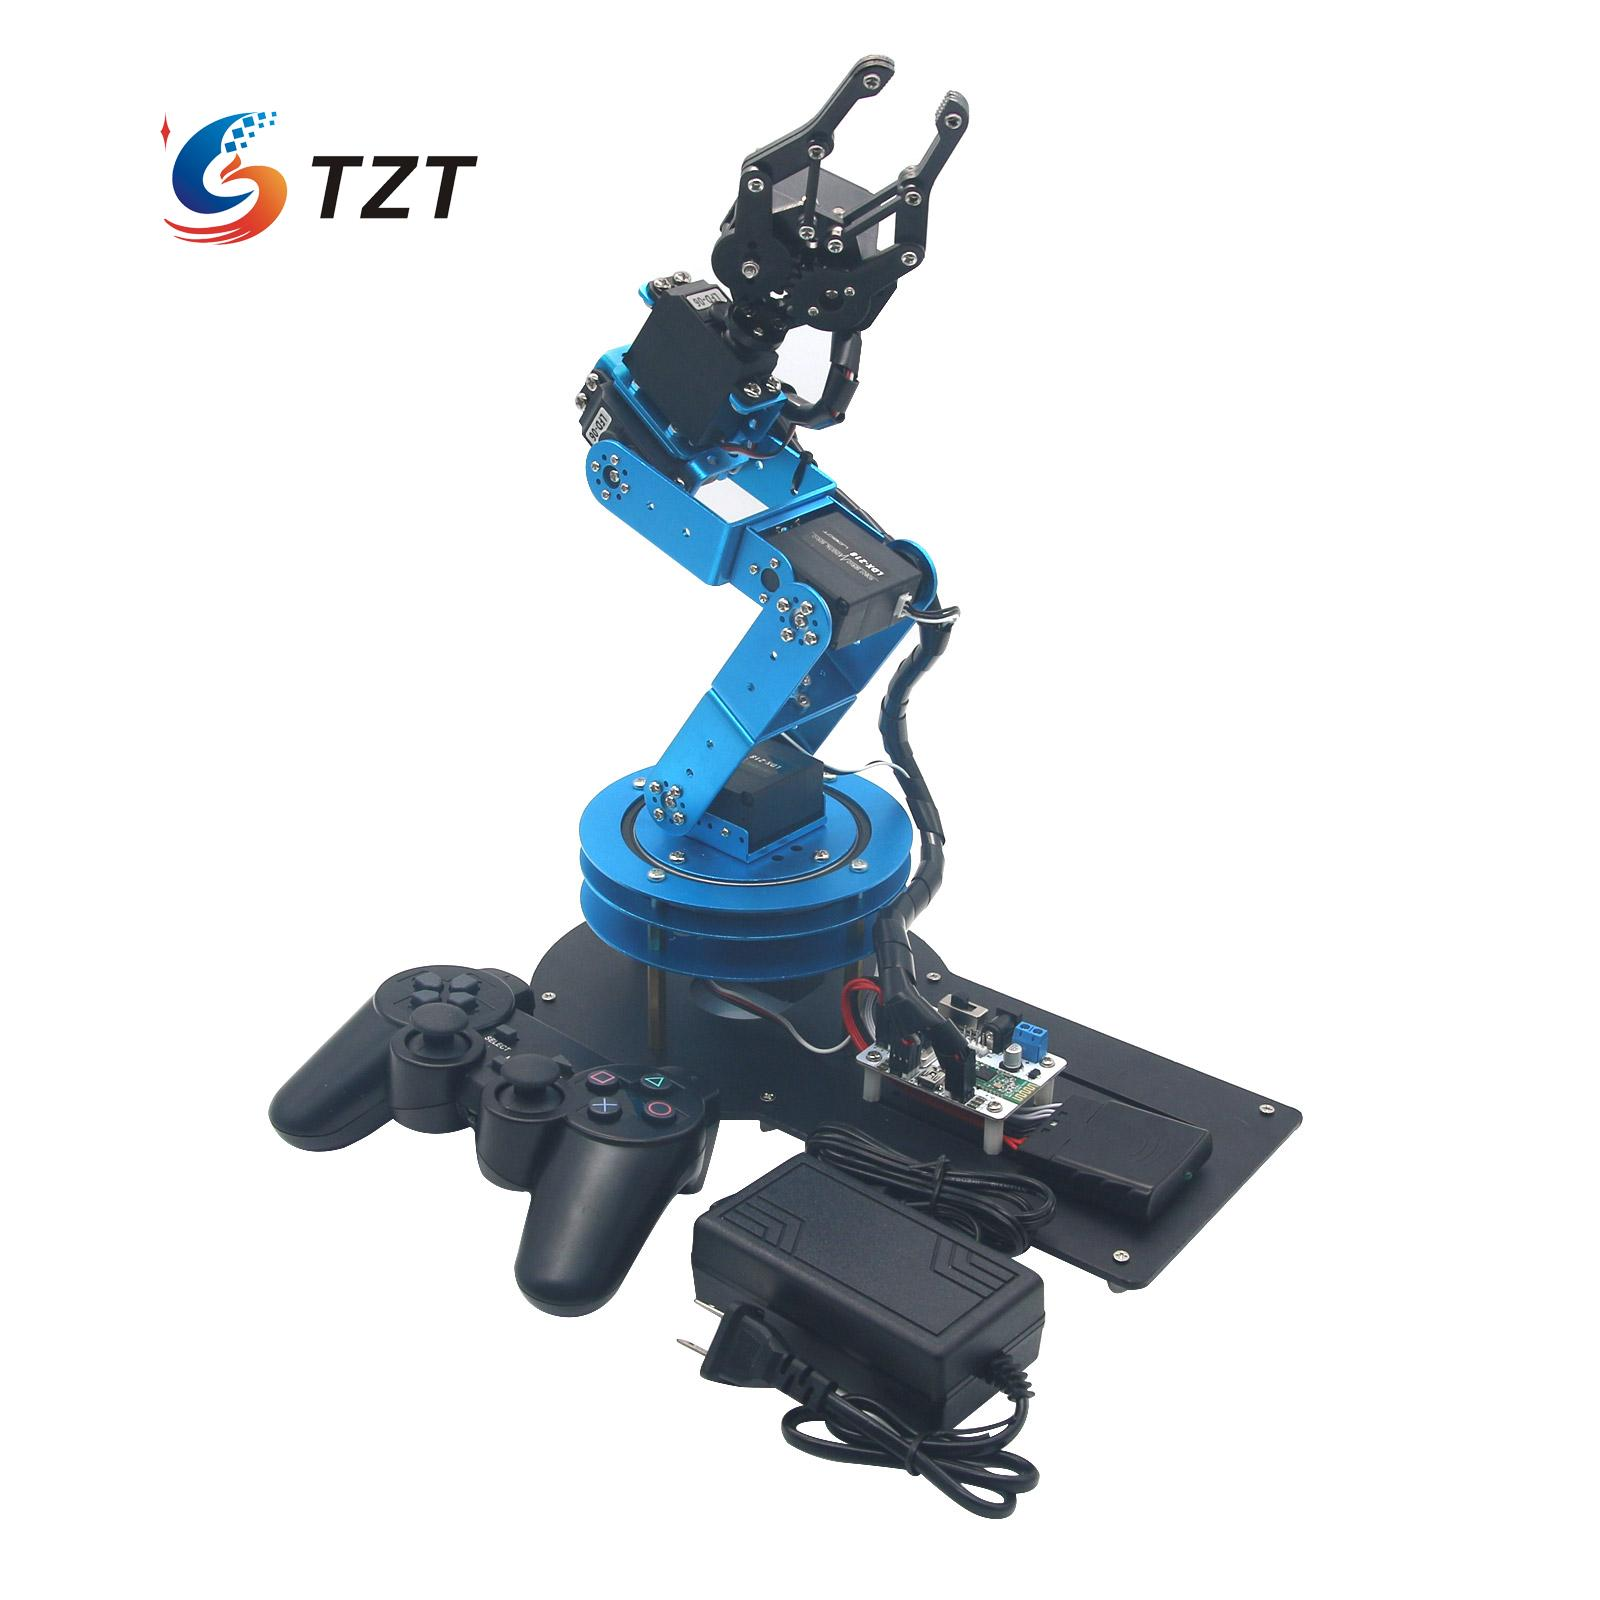 LeArm 6DOF Mechnical Robotic Arm with 6PCS Digital Servo and PS2 Handle Control for Education DIY Assembled манипулятор 6 dof 320 мм dfrobot robotic arm